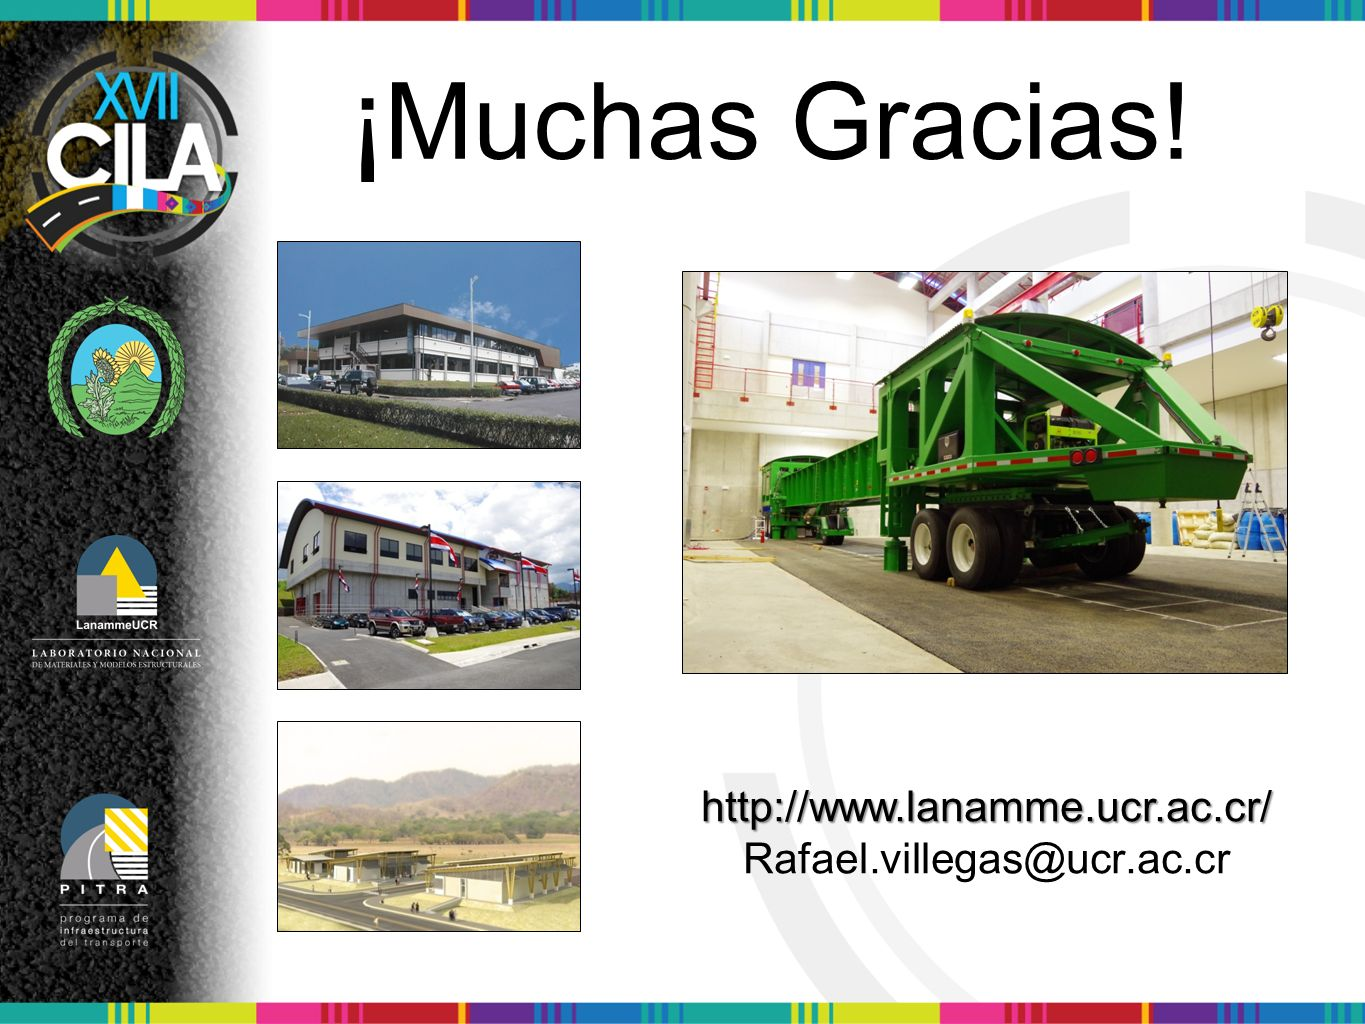 ¡Muchas Gracias! http://www.lanamme.ucr.ac.cr/